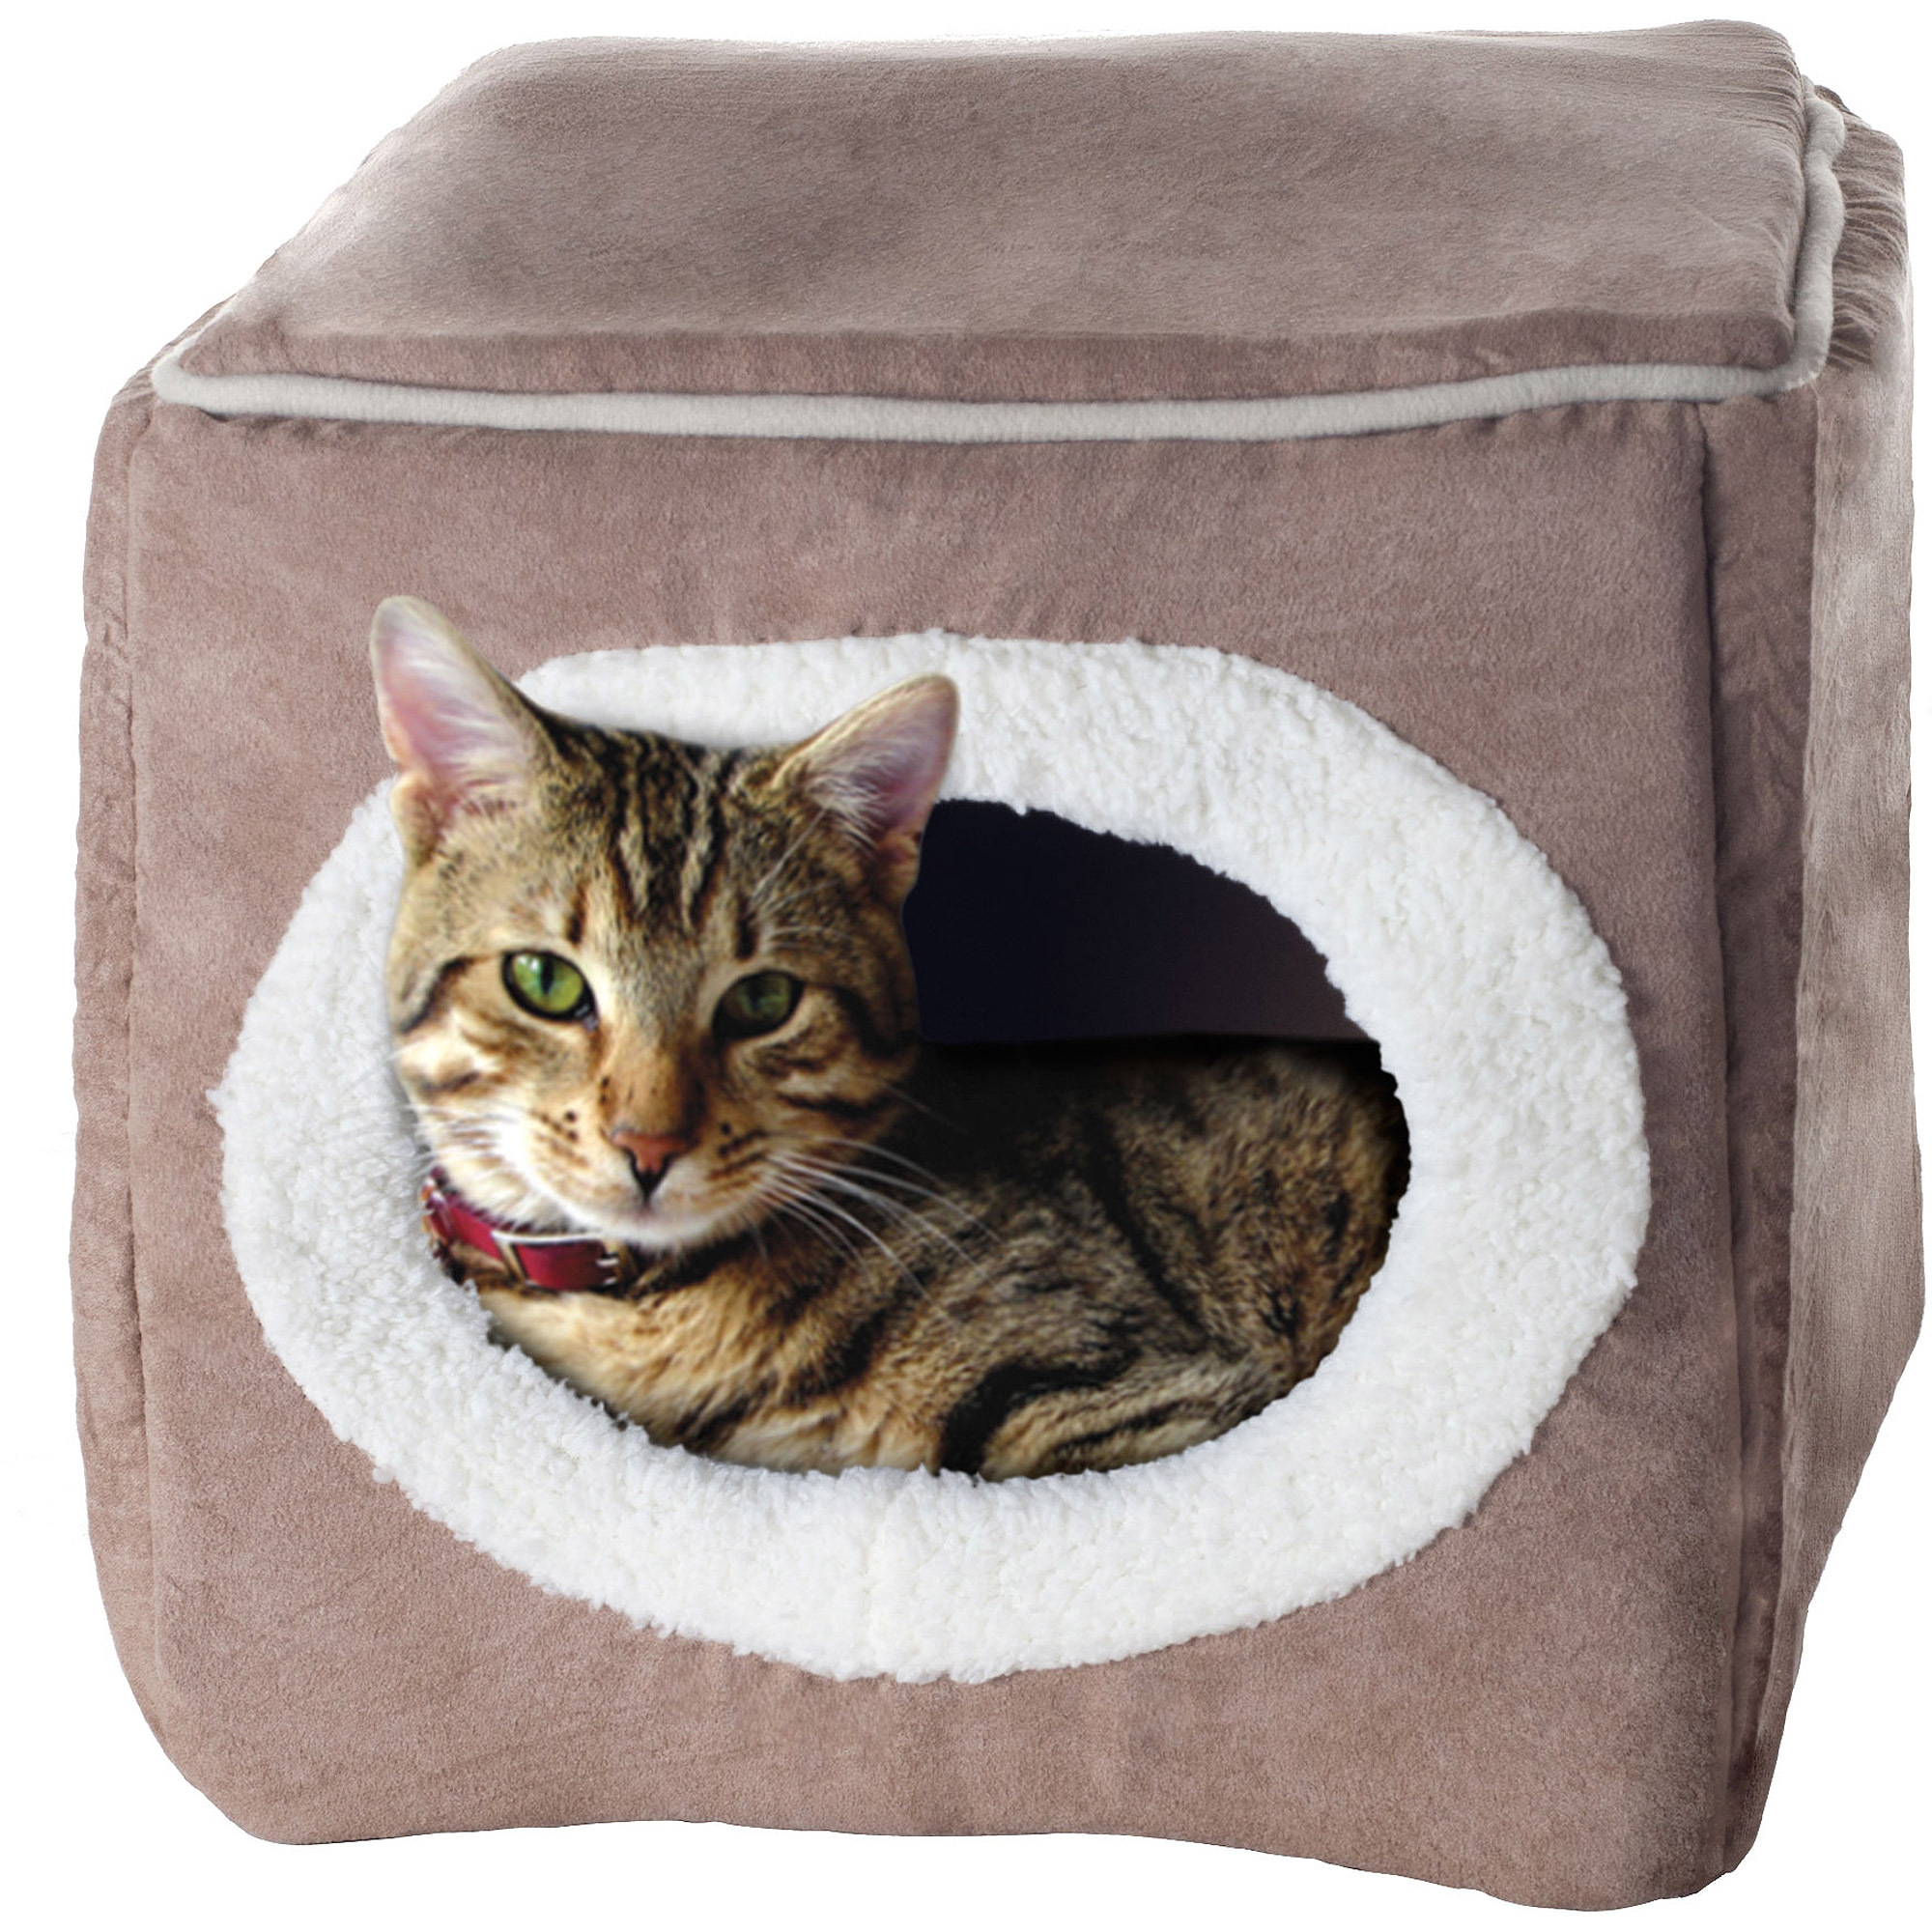 cozy bed petco dog product right snoozer and cave en petcostore in luxury cream shop pet olive